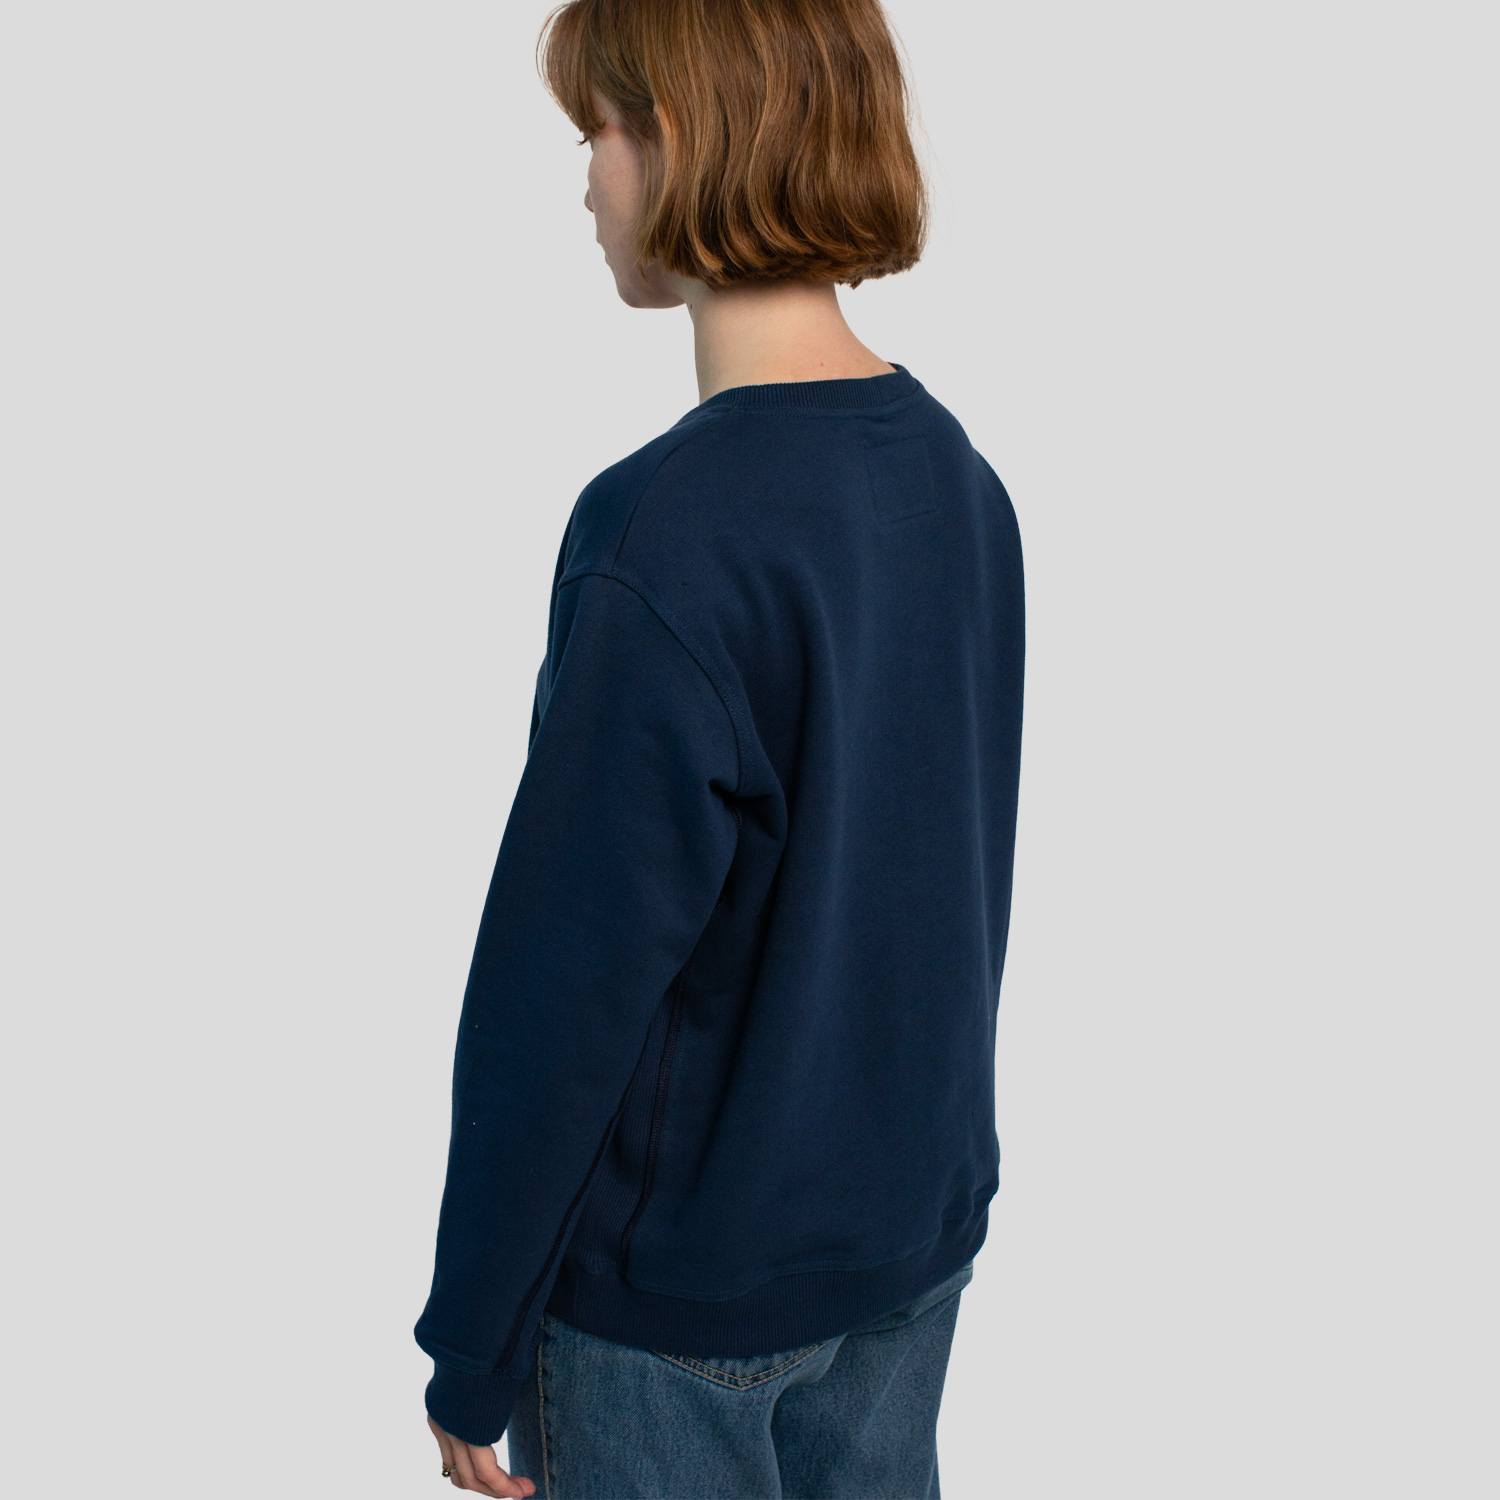 Sweatshirt-boxfit-navy-back-side.jpg